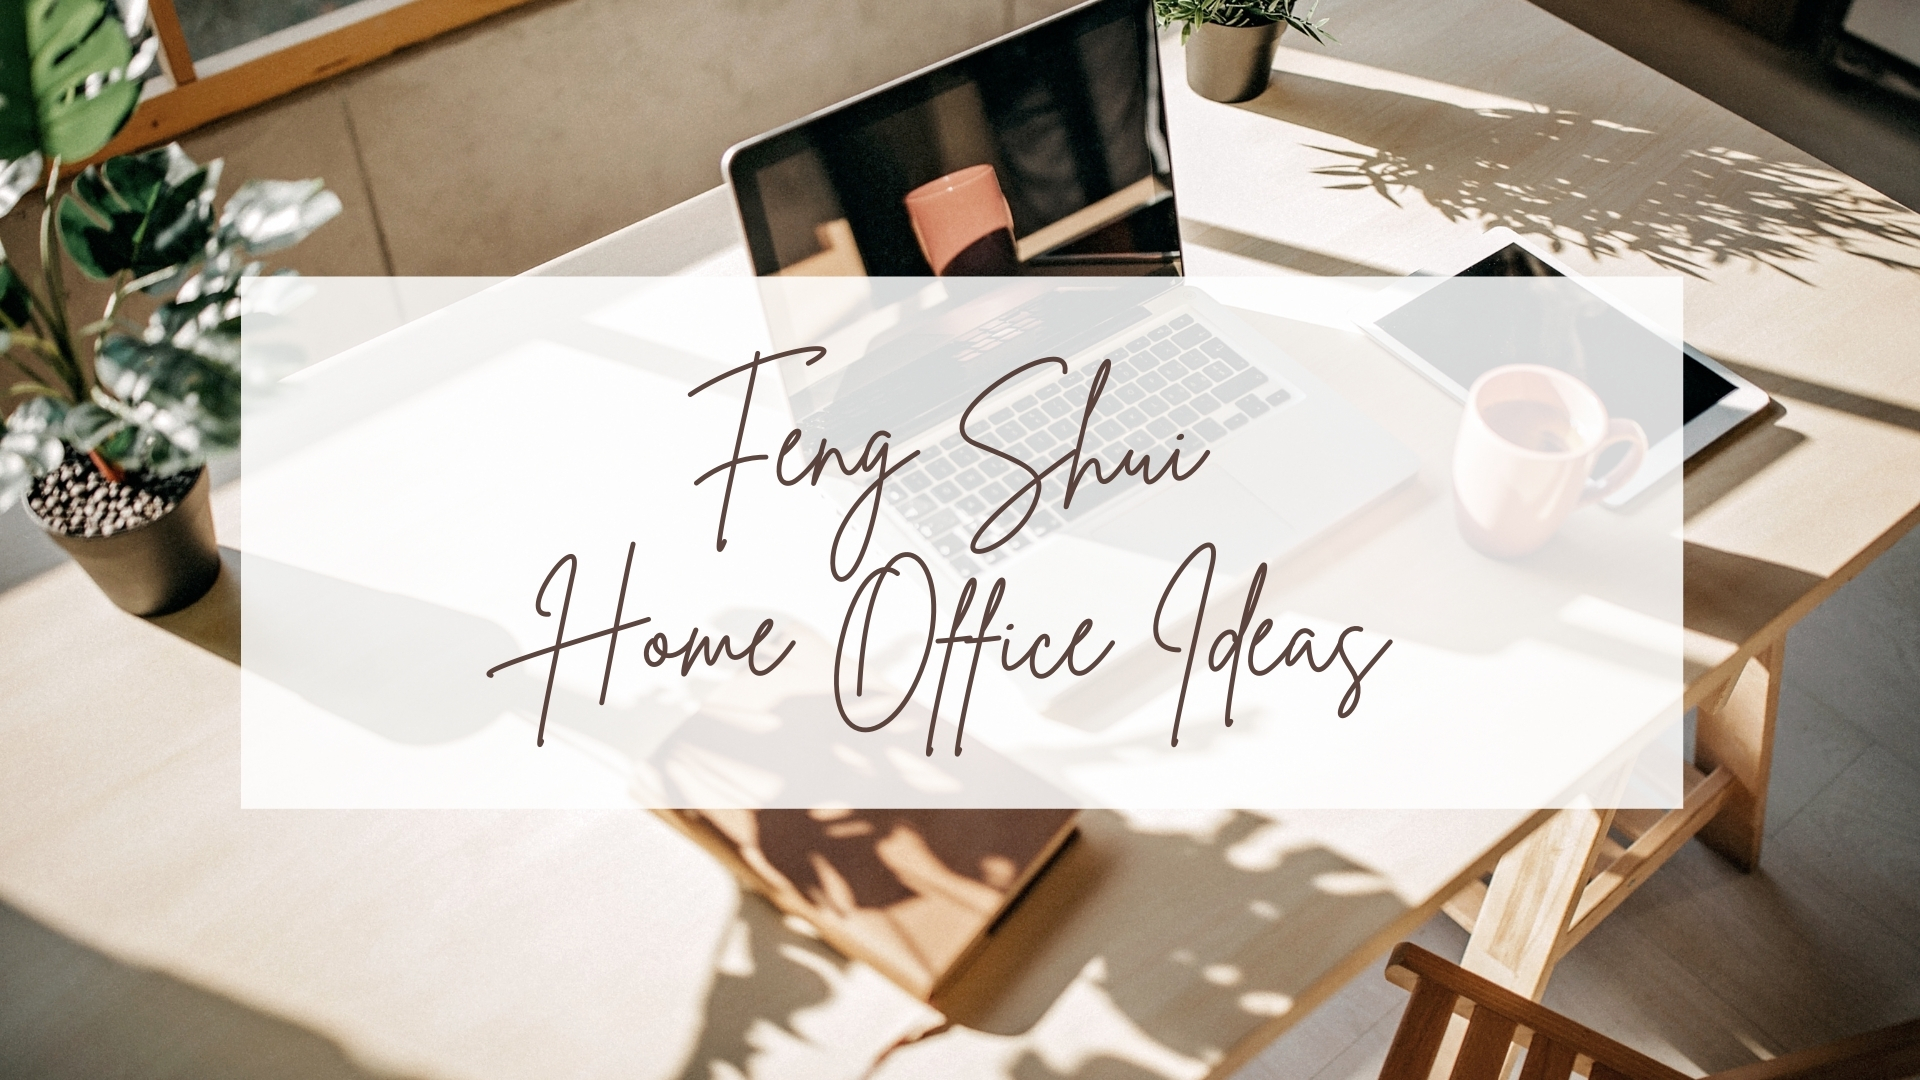 Feng Shui Home Office Ideas for Increased Productivity